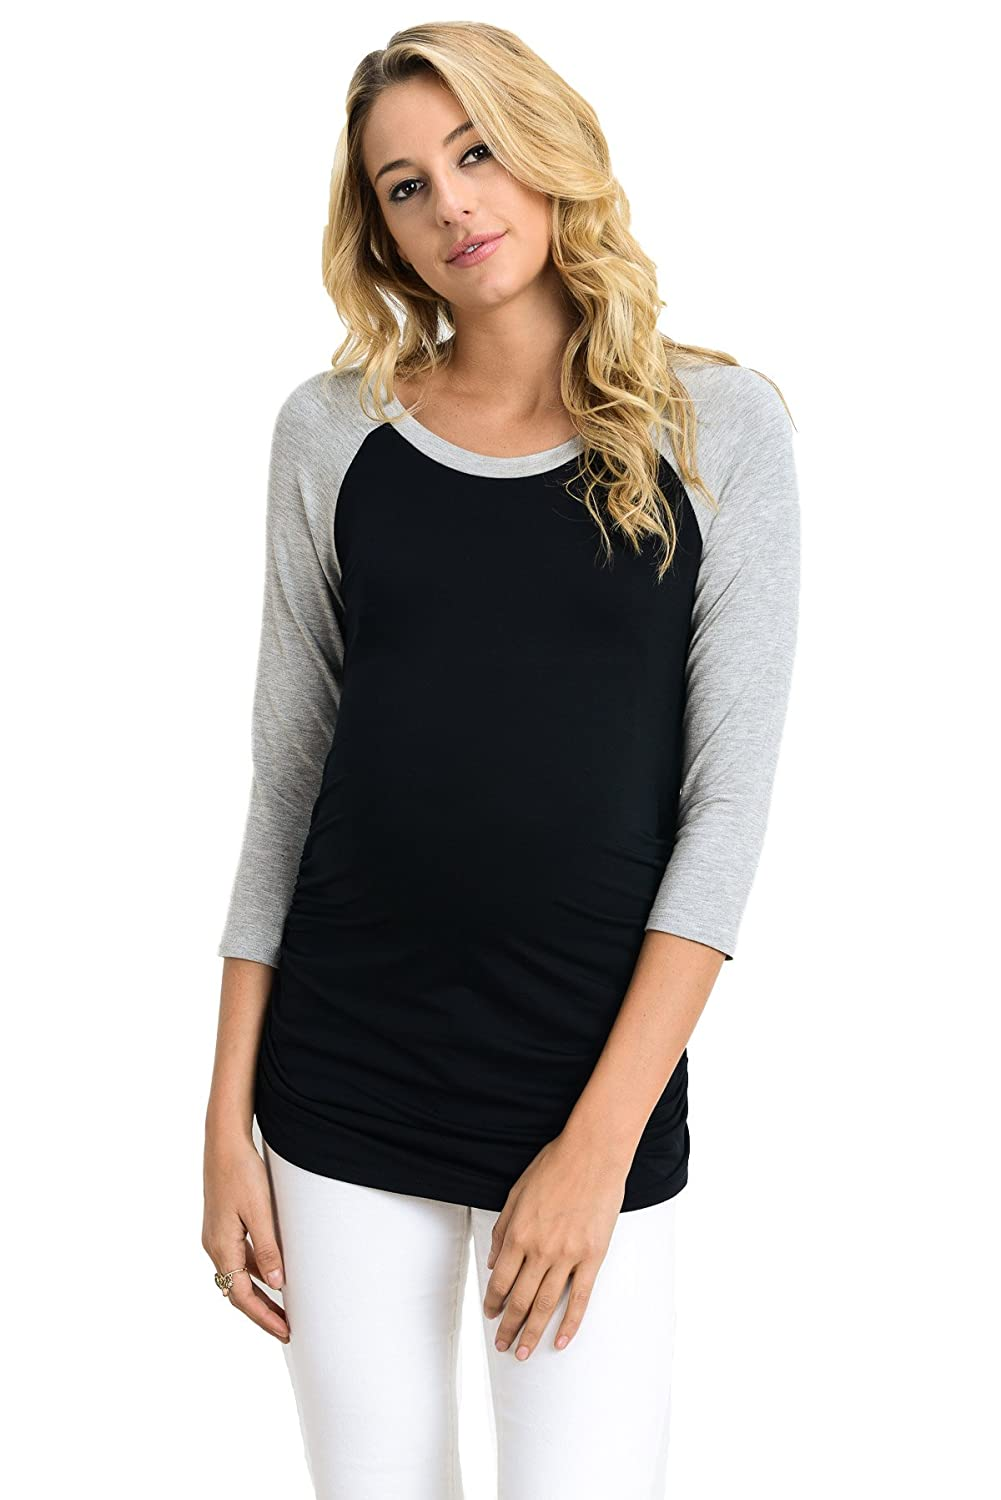 Black H Grey LaClef Women's Maternity TShirts Top with Baseball Raglan